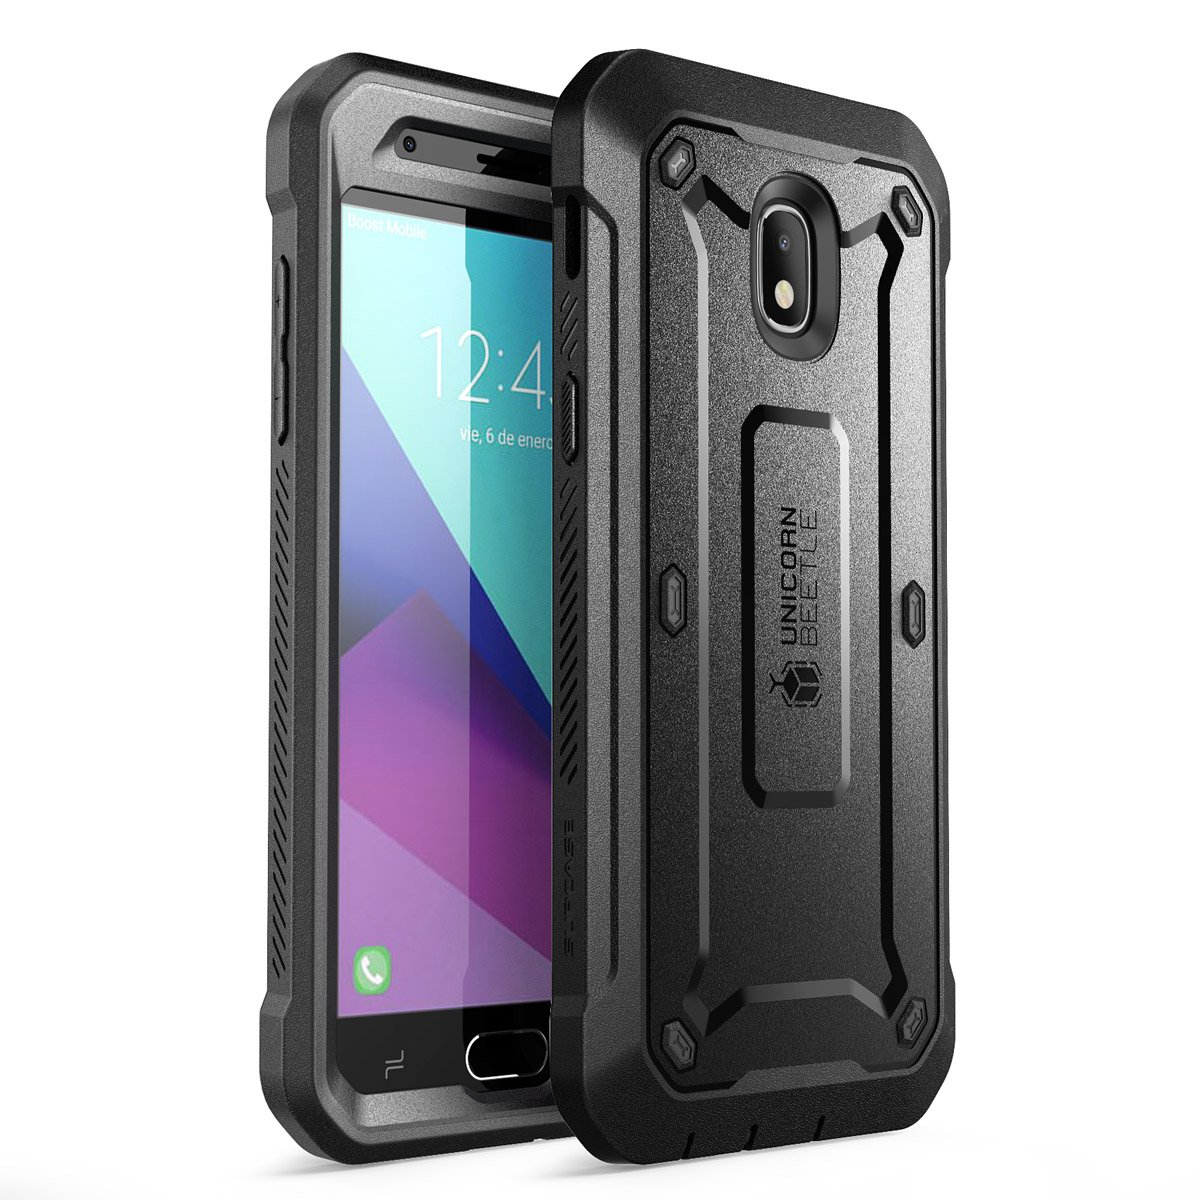 Galaxy J7 2018 Case, SUPCASE Unicorn Beetle Pro Series Full-Body Rugged Holster Case with Built-in Screen Protector for Galaxy J7 (J737) 2018 ...